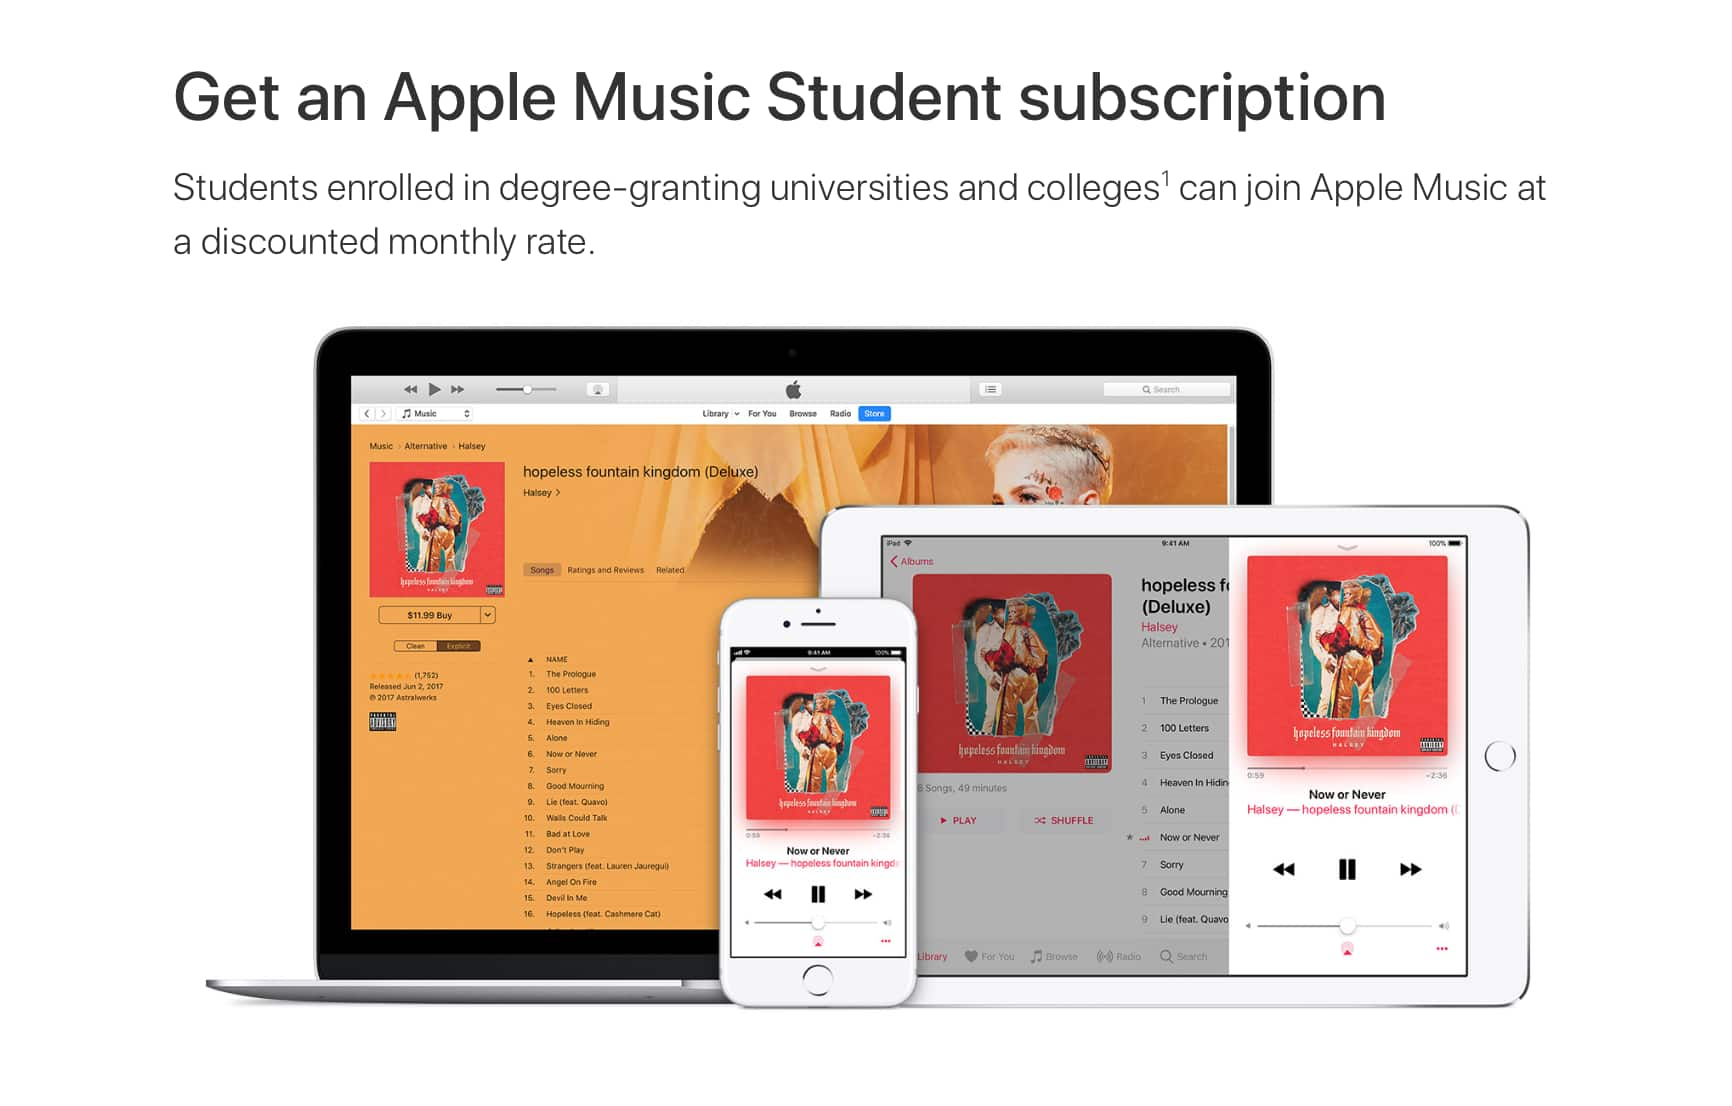 Those with EDU/College Email: Apple Music for $4.99 a month up to 48 months